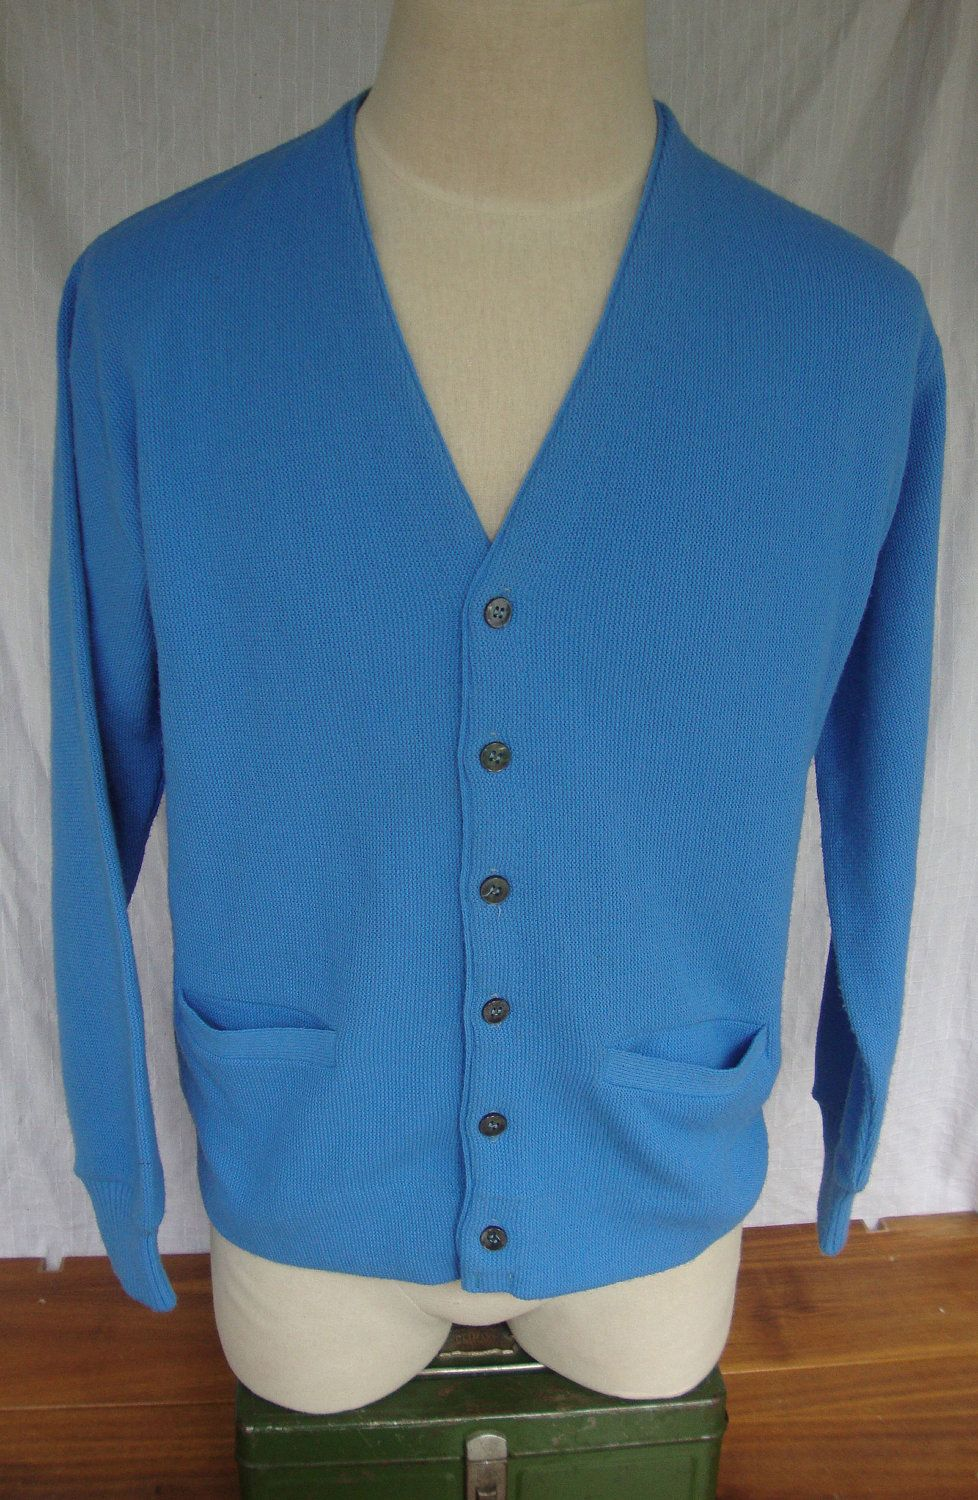 vintage 1960s 100% Virgin Orlon Acrylic light blue Cardigan ...